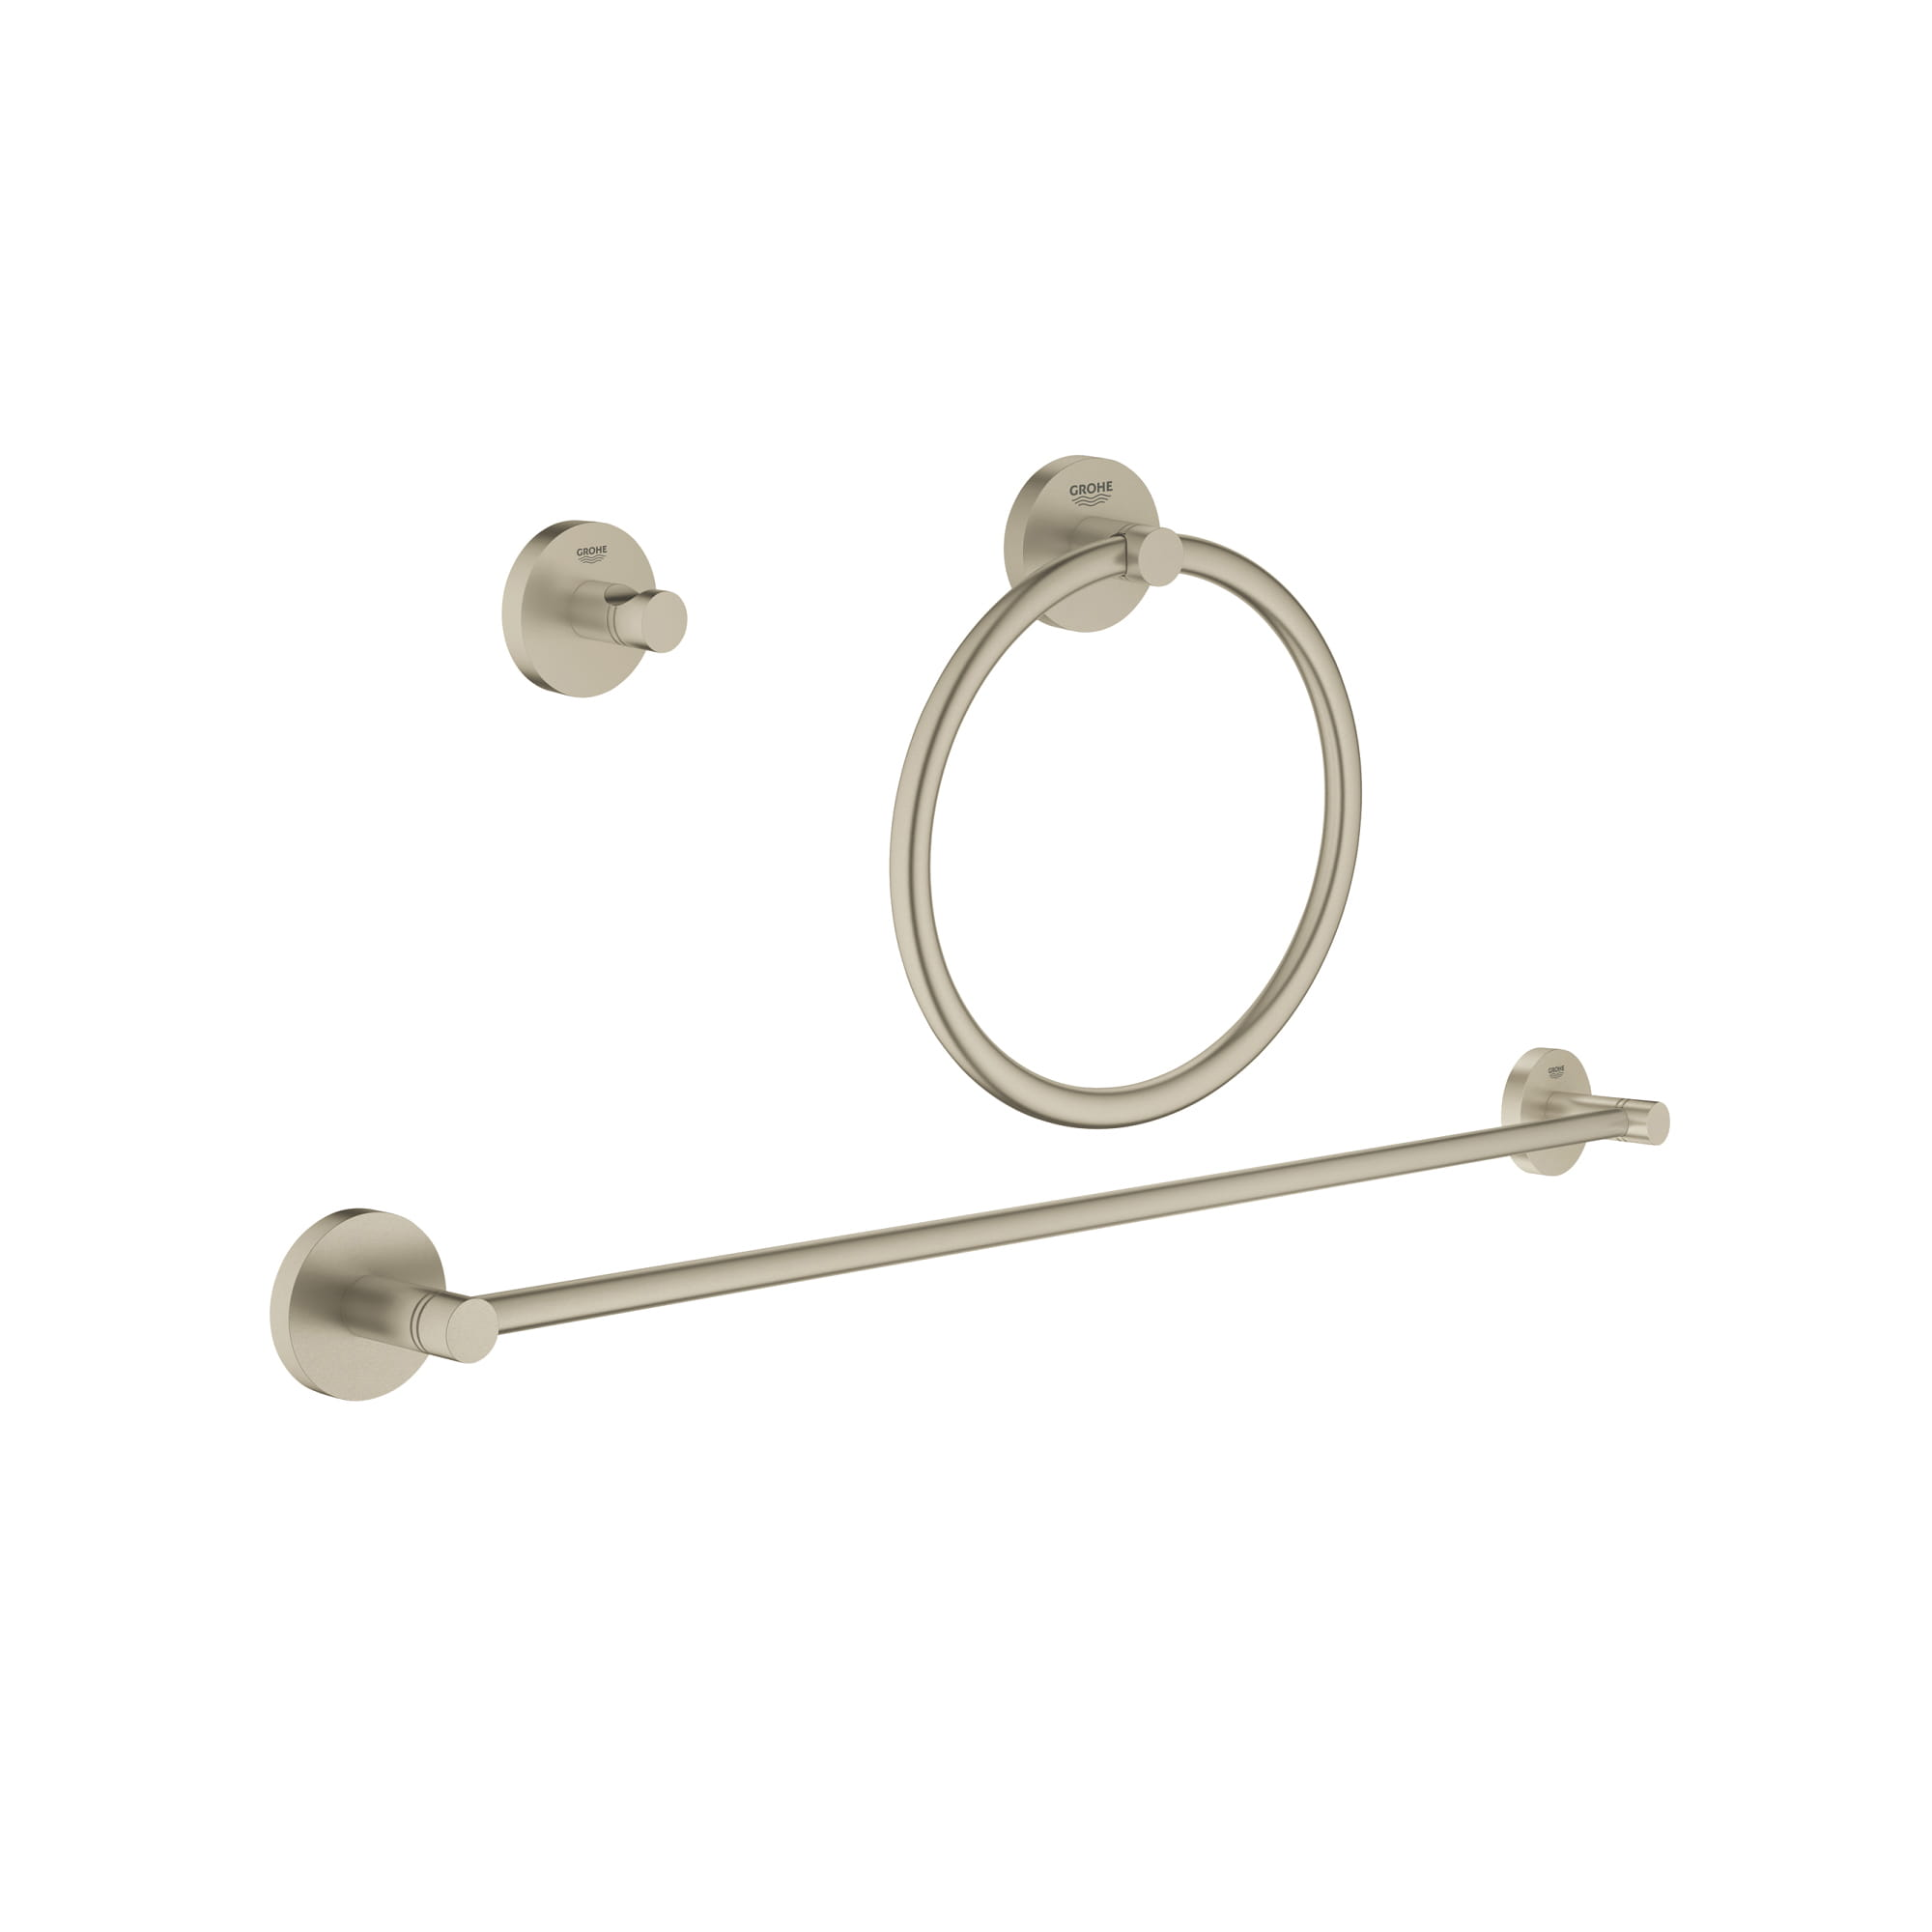 Essentials Ensemble pour salle de bain urbaine 3 en 1 GROHE BRUSHED NICKEL